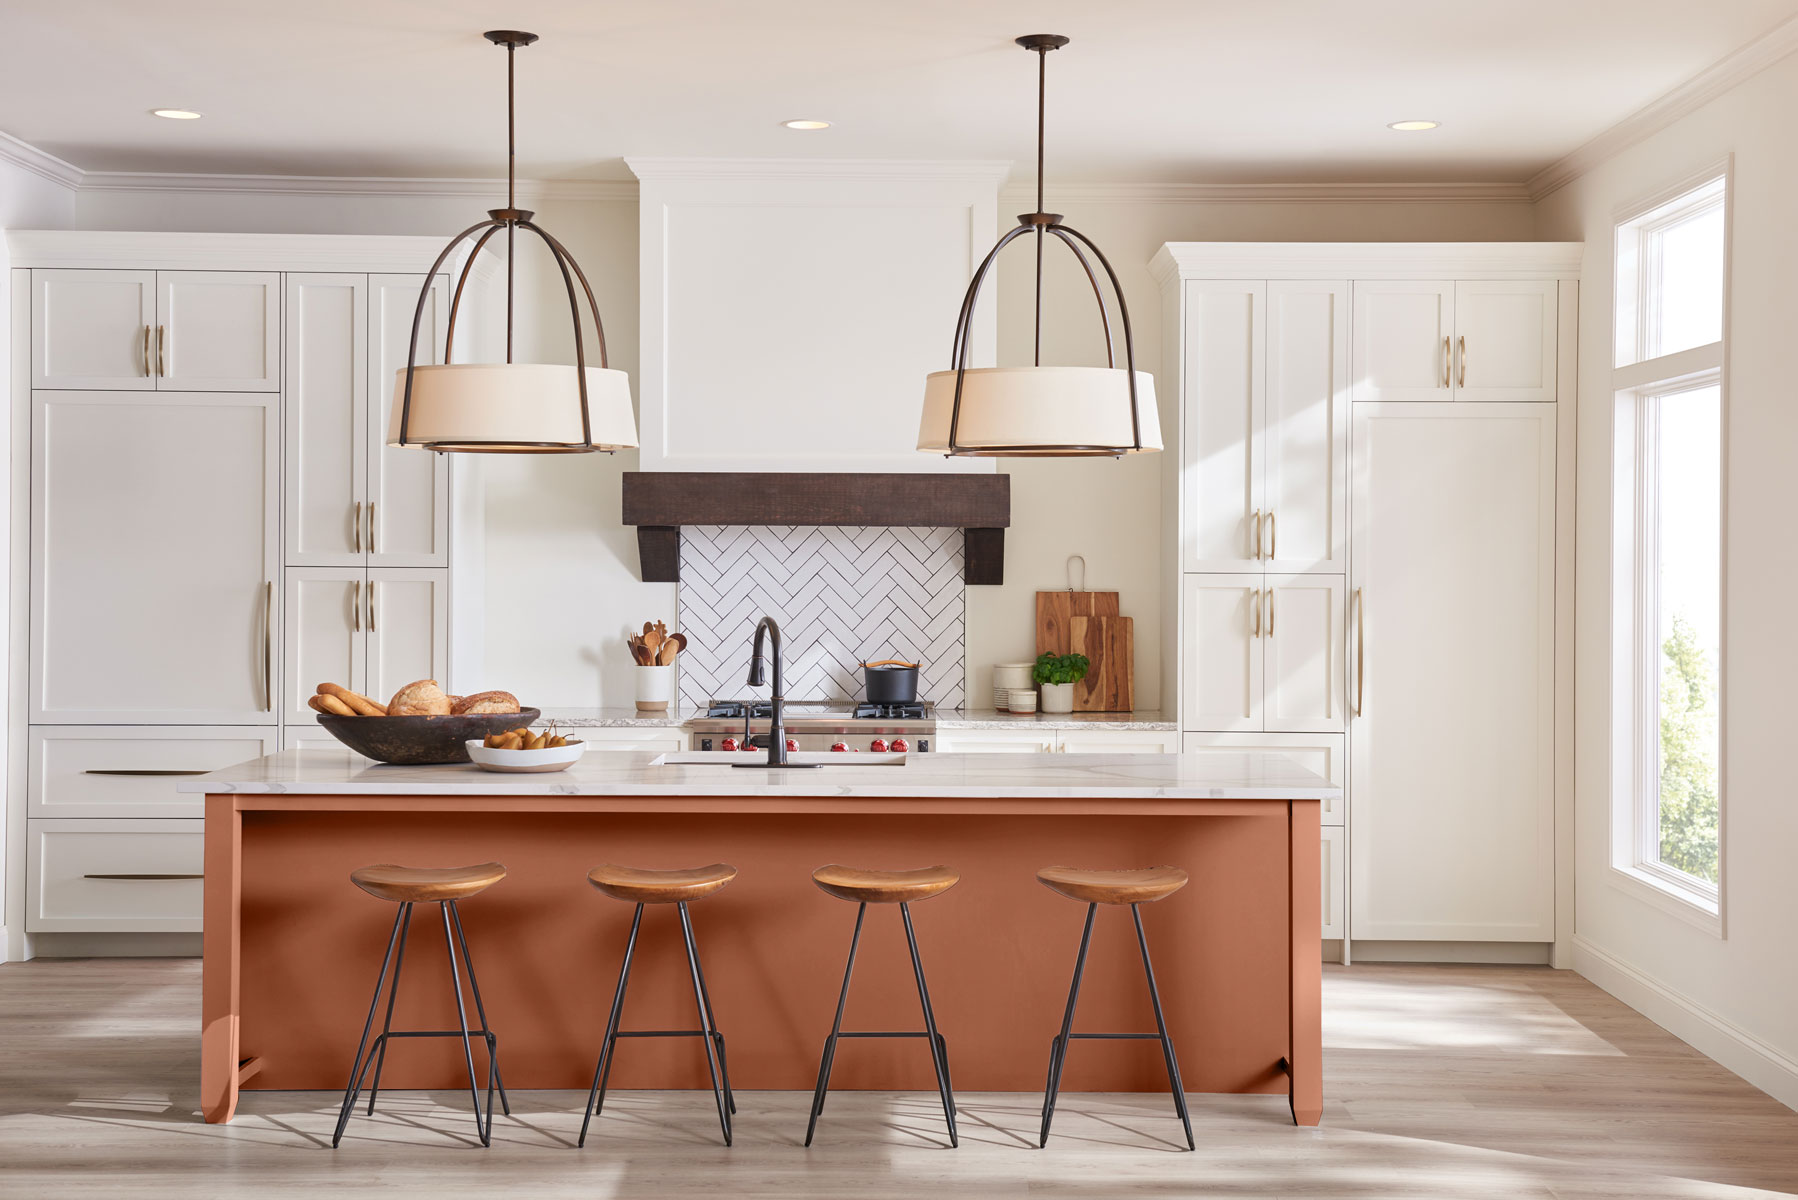 Kitchen Server Furniture | Kitchen Countertops Trends In 2019 Smart Deco Furniture